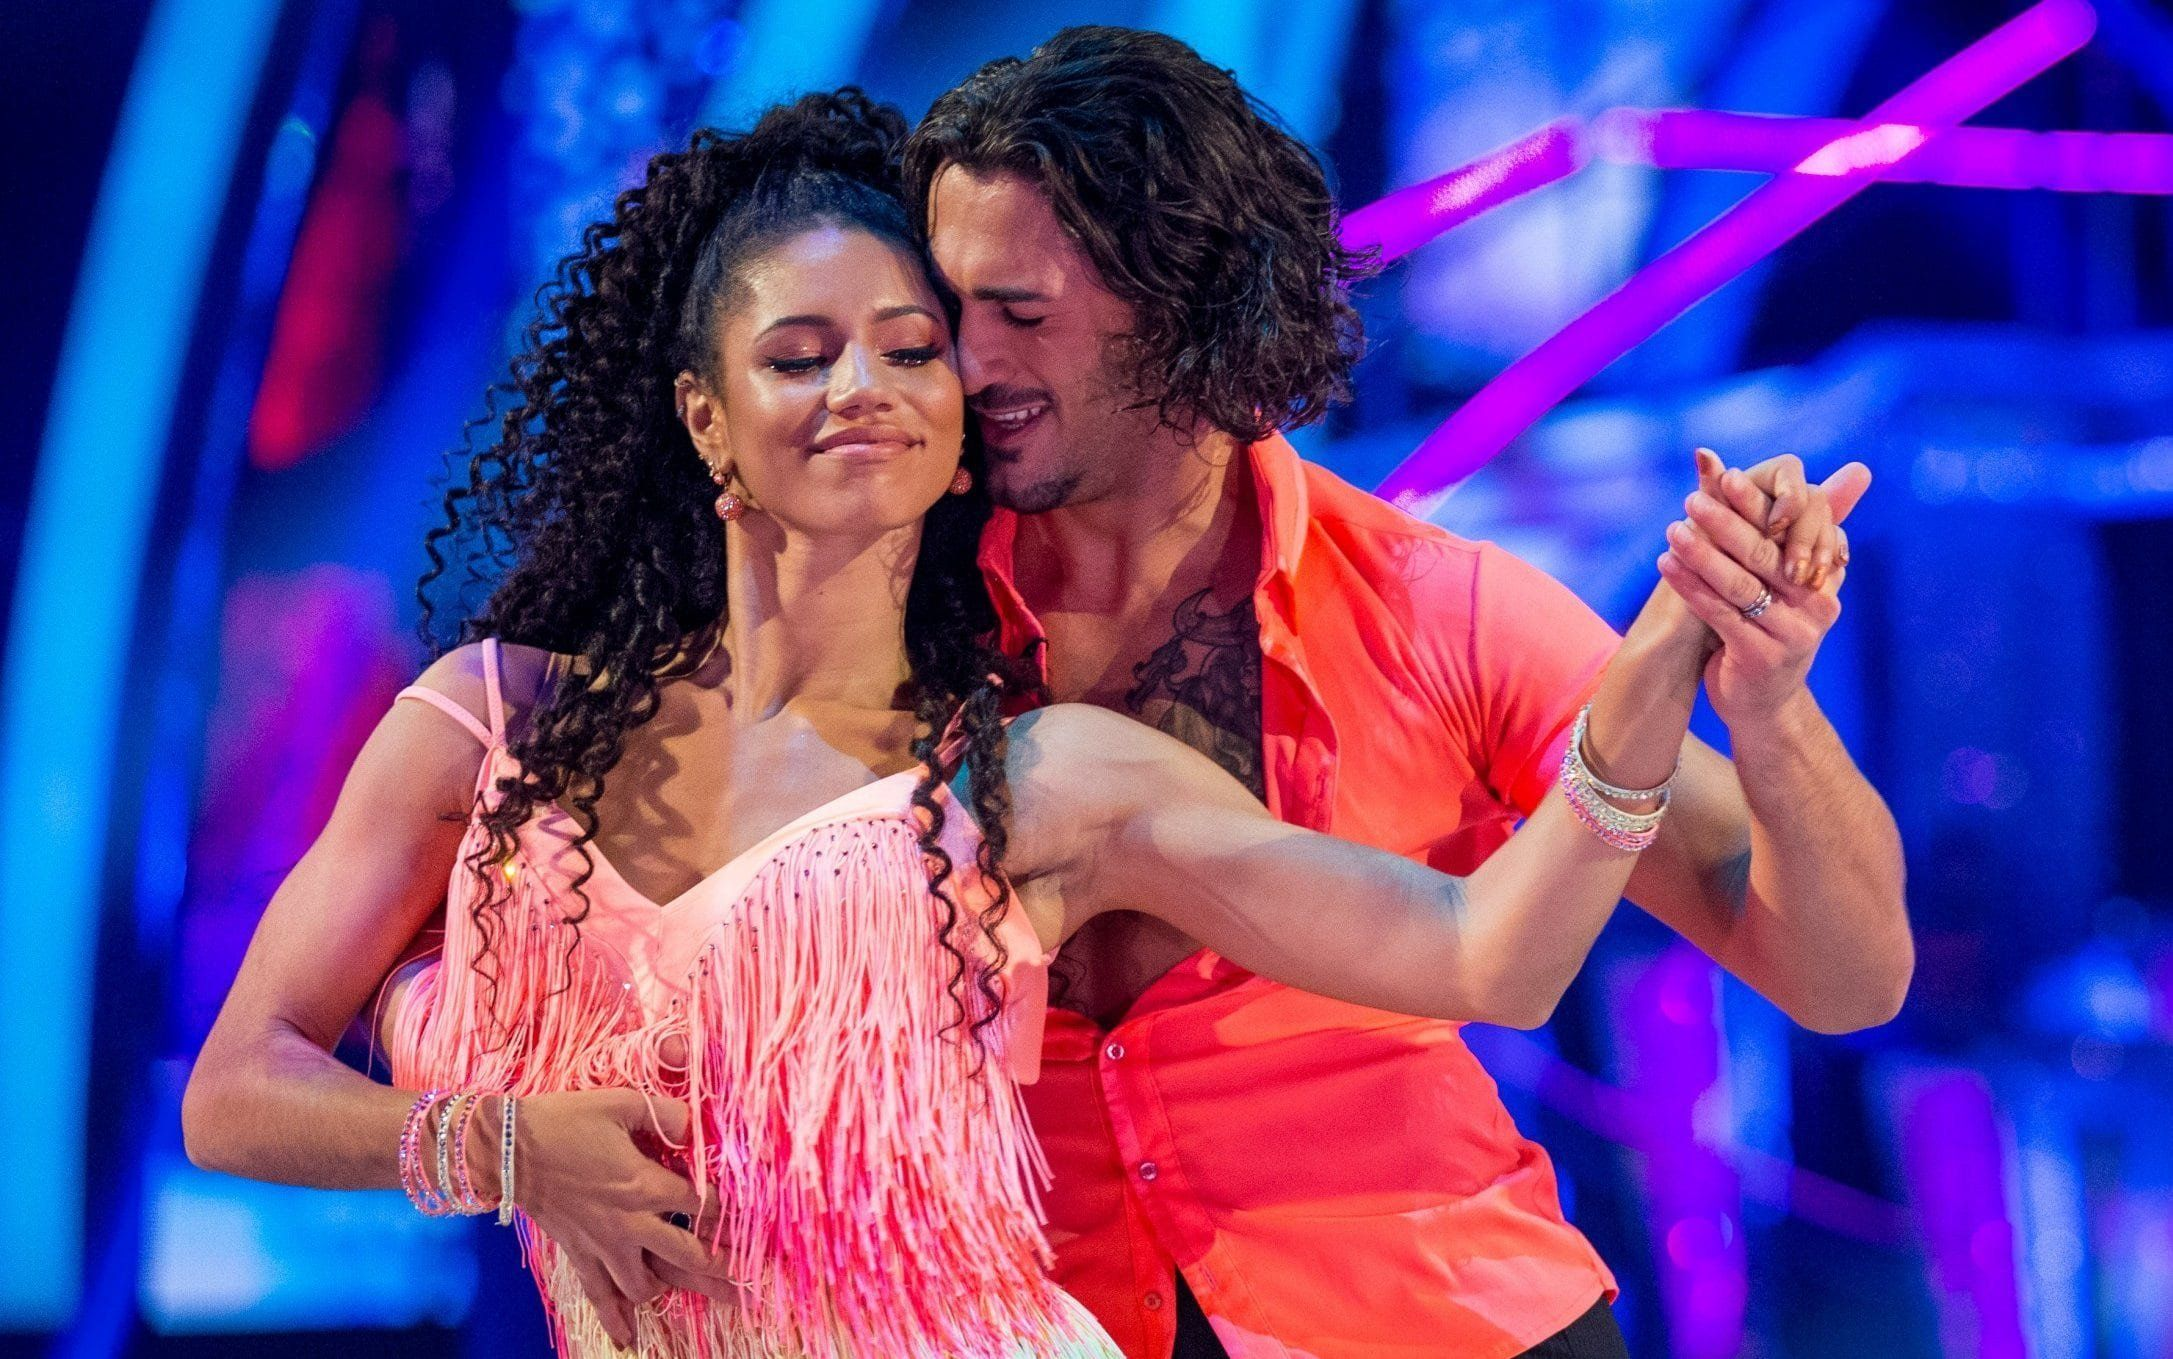 'Strictly' Bosses 'Categorically' Deny They Influence Vote As Vick Hope Backtracks On Seann Walsh Dance-Off